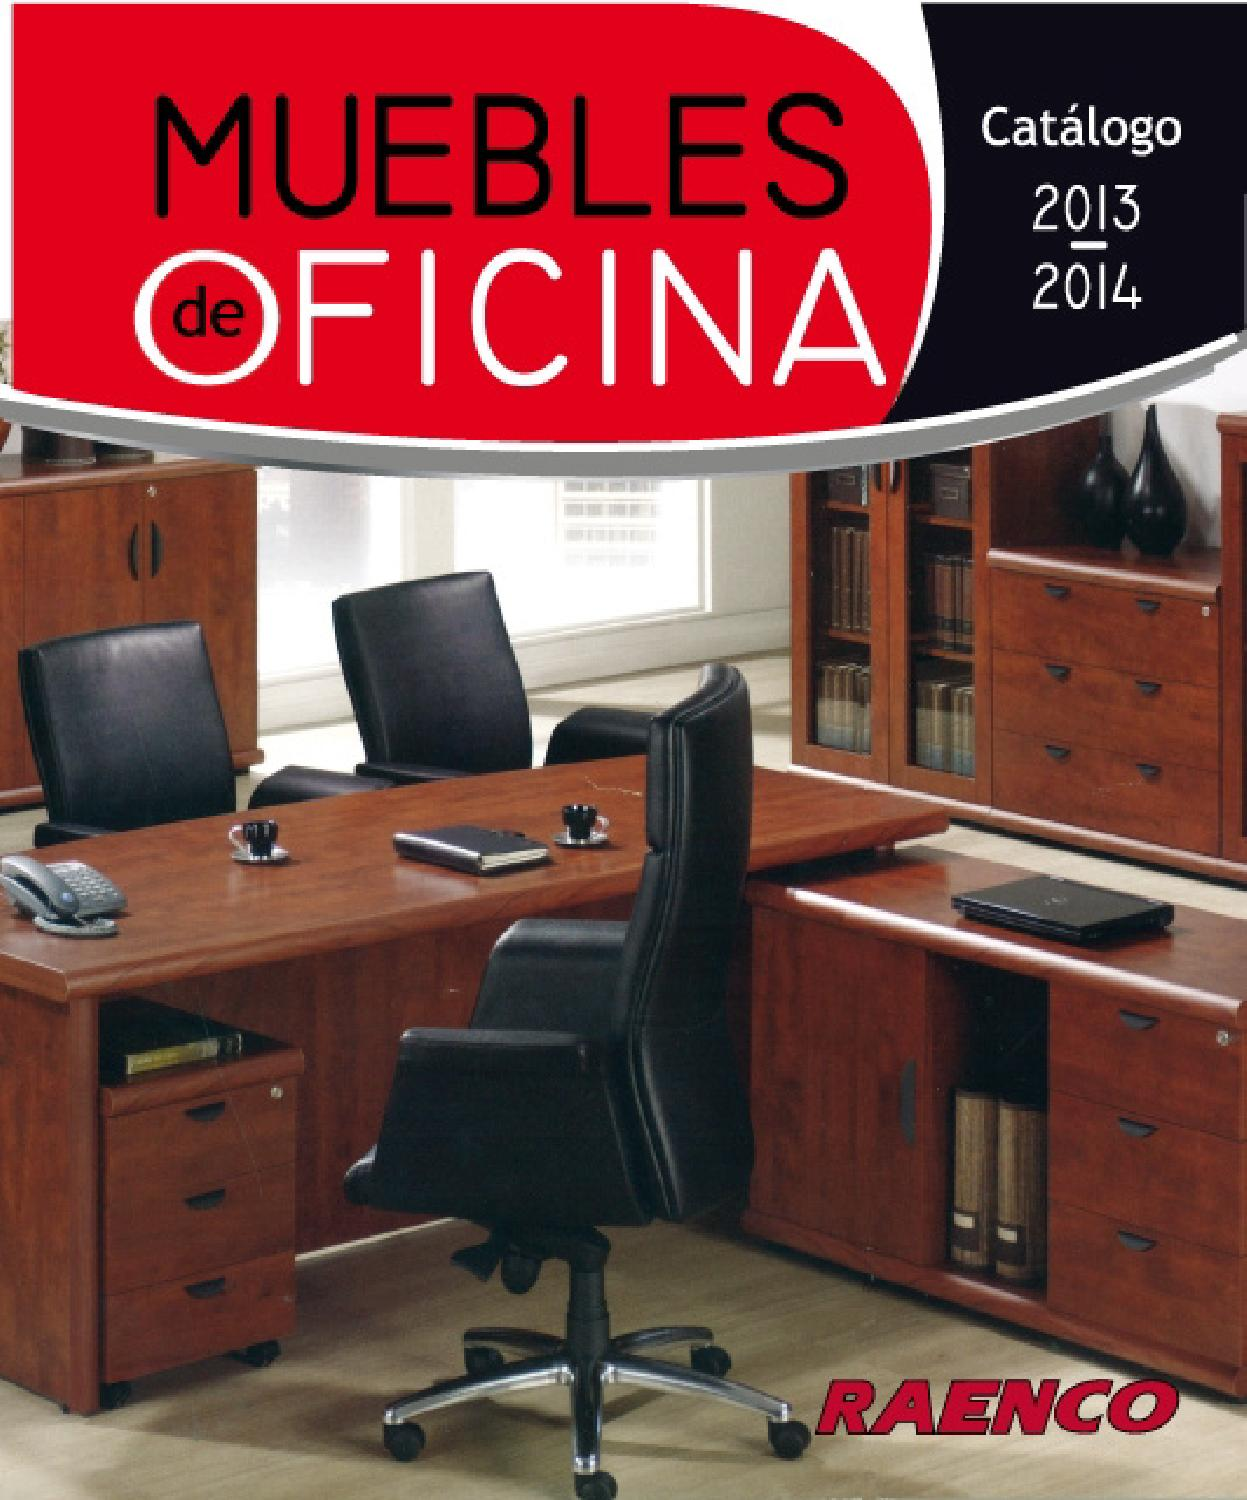 Cat logo raenco oficina by interiores estilo issuu for Muebles de oficina wengue